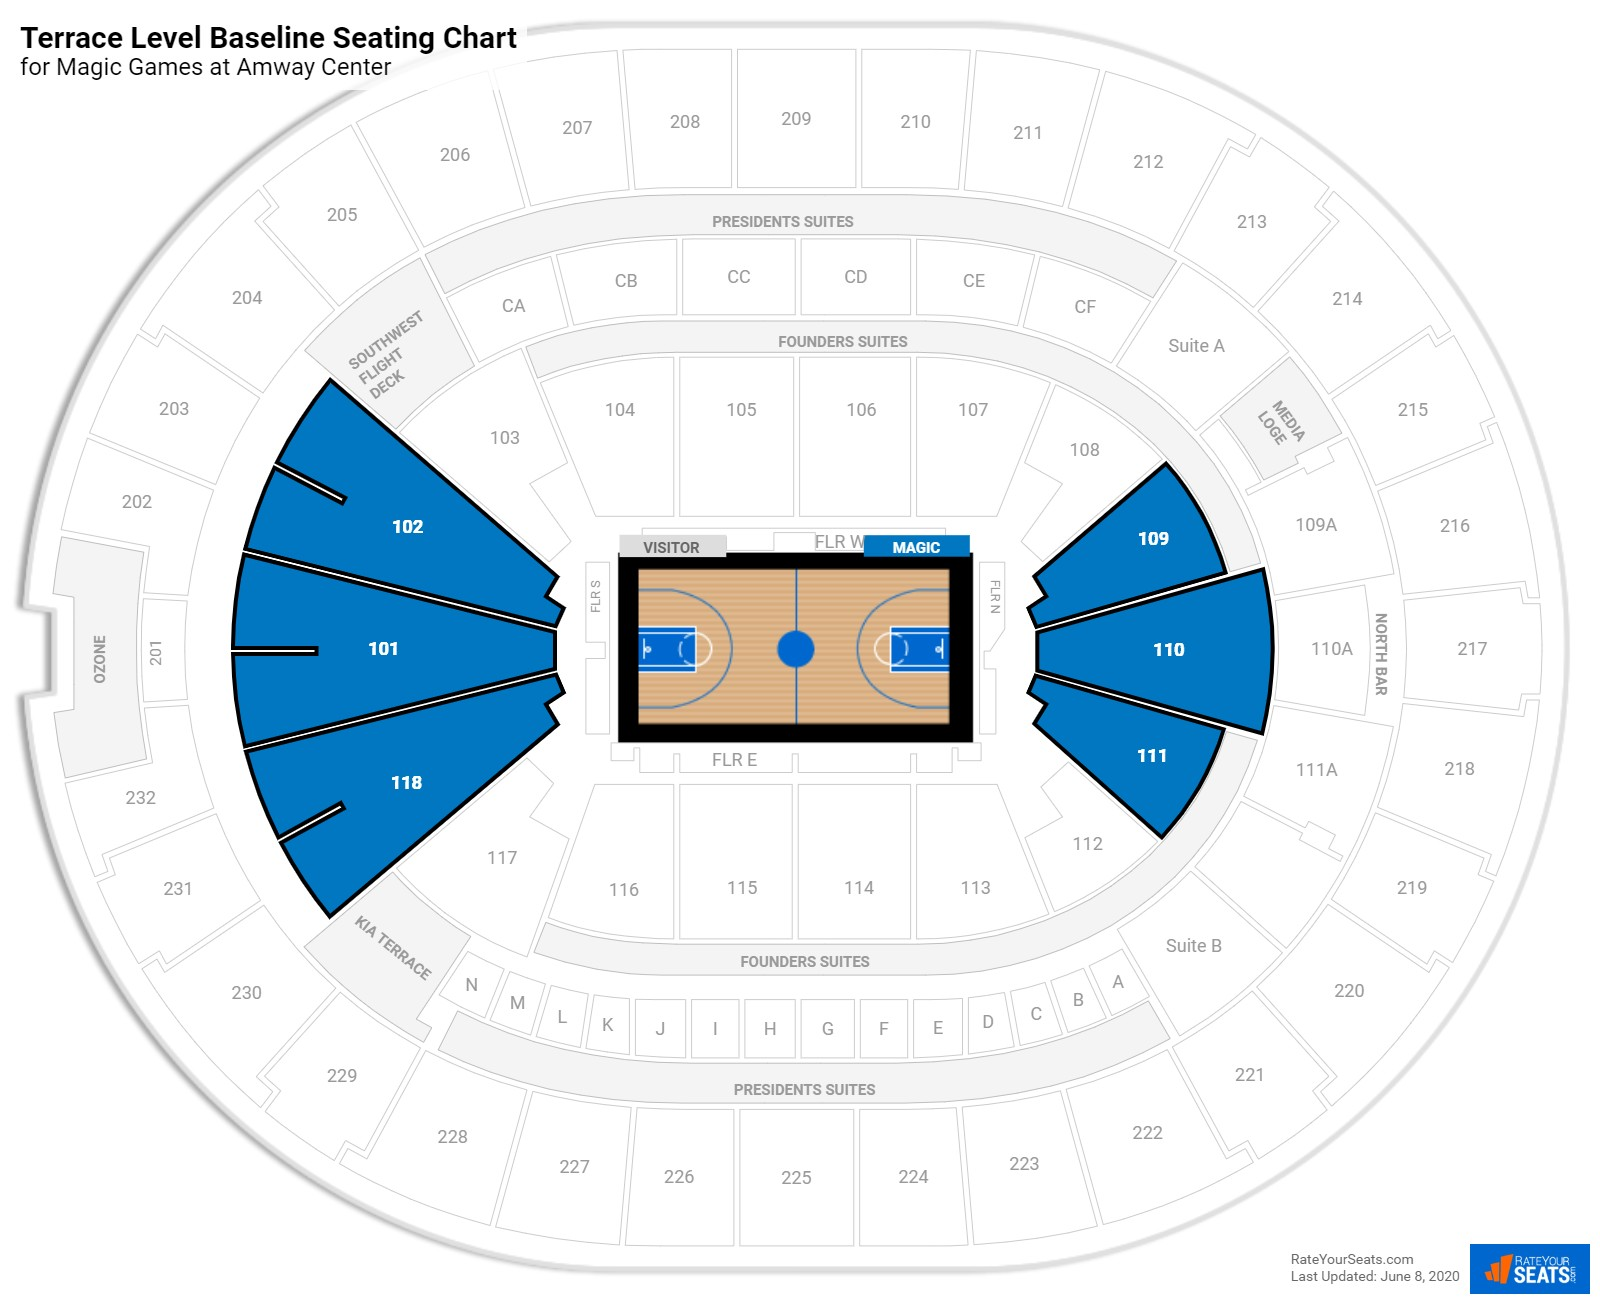 Amway Center Terrace Level Baseline seating chart